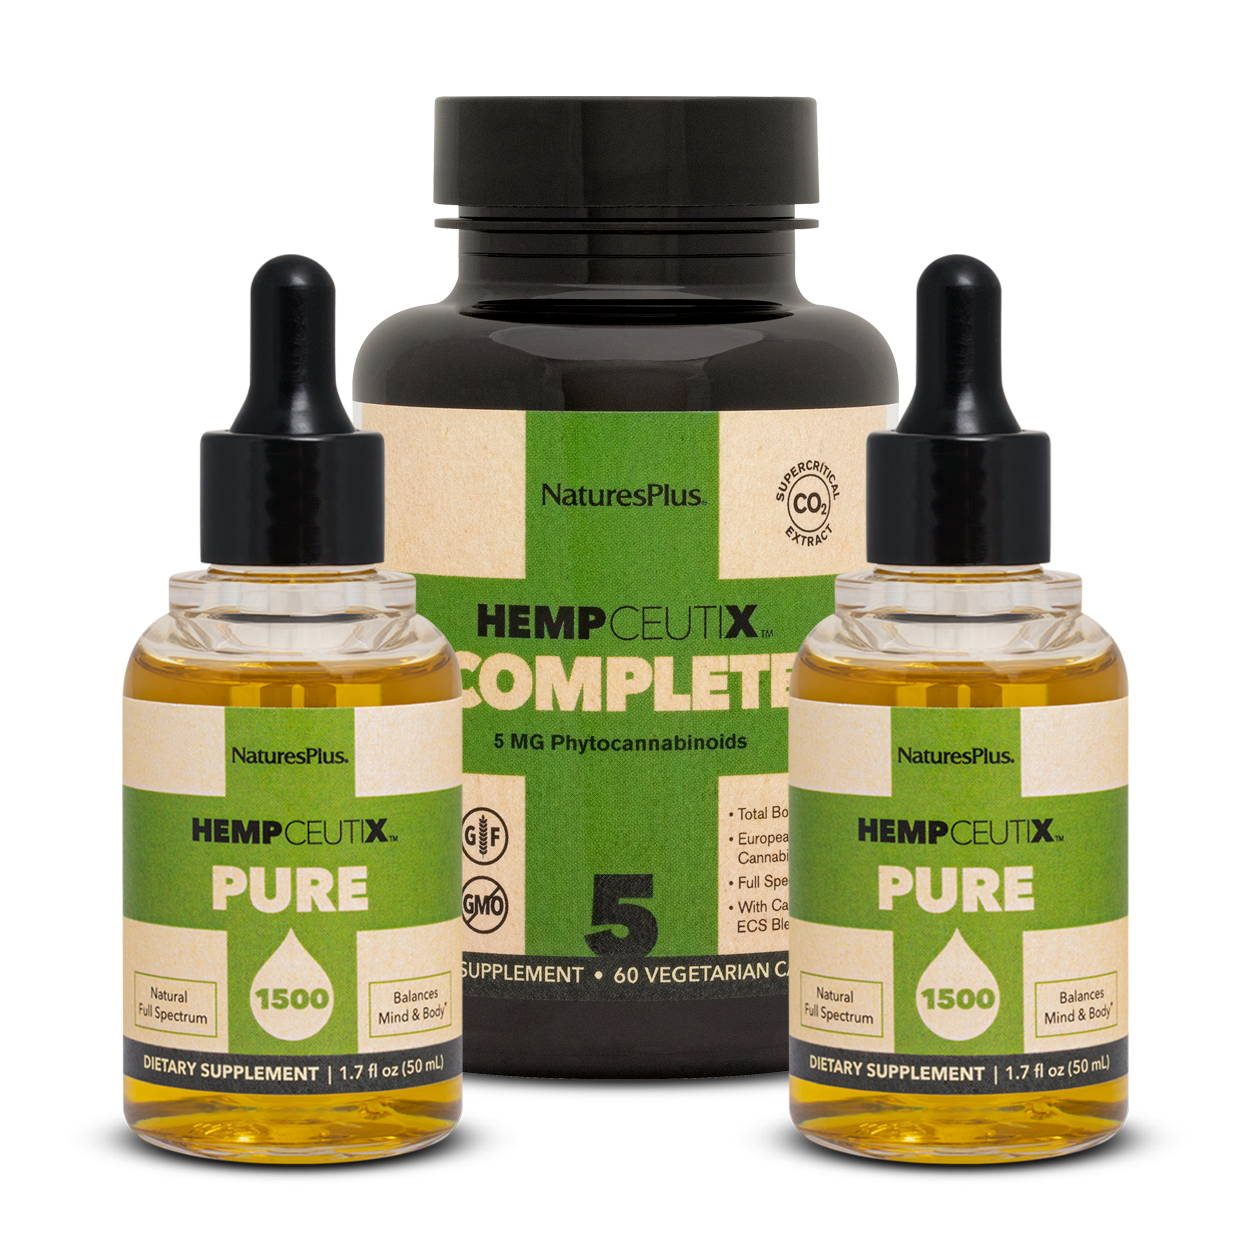 Wellness stack image containing 2 bottles of Hempceutix Pure1500 and 1 bottle of Compleate 5